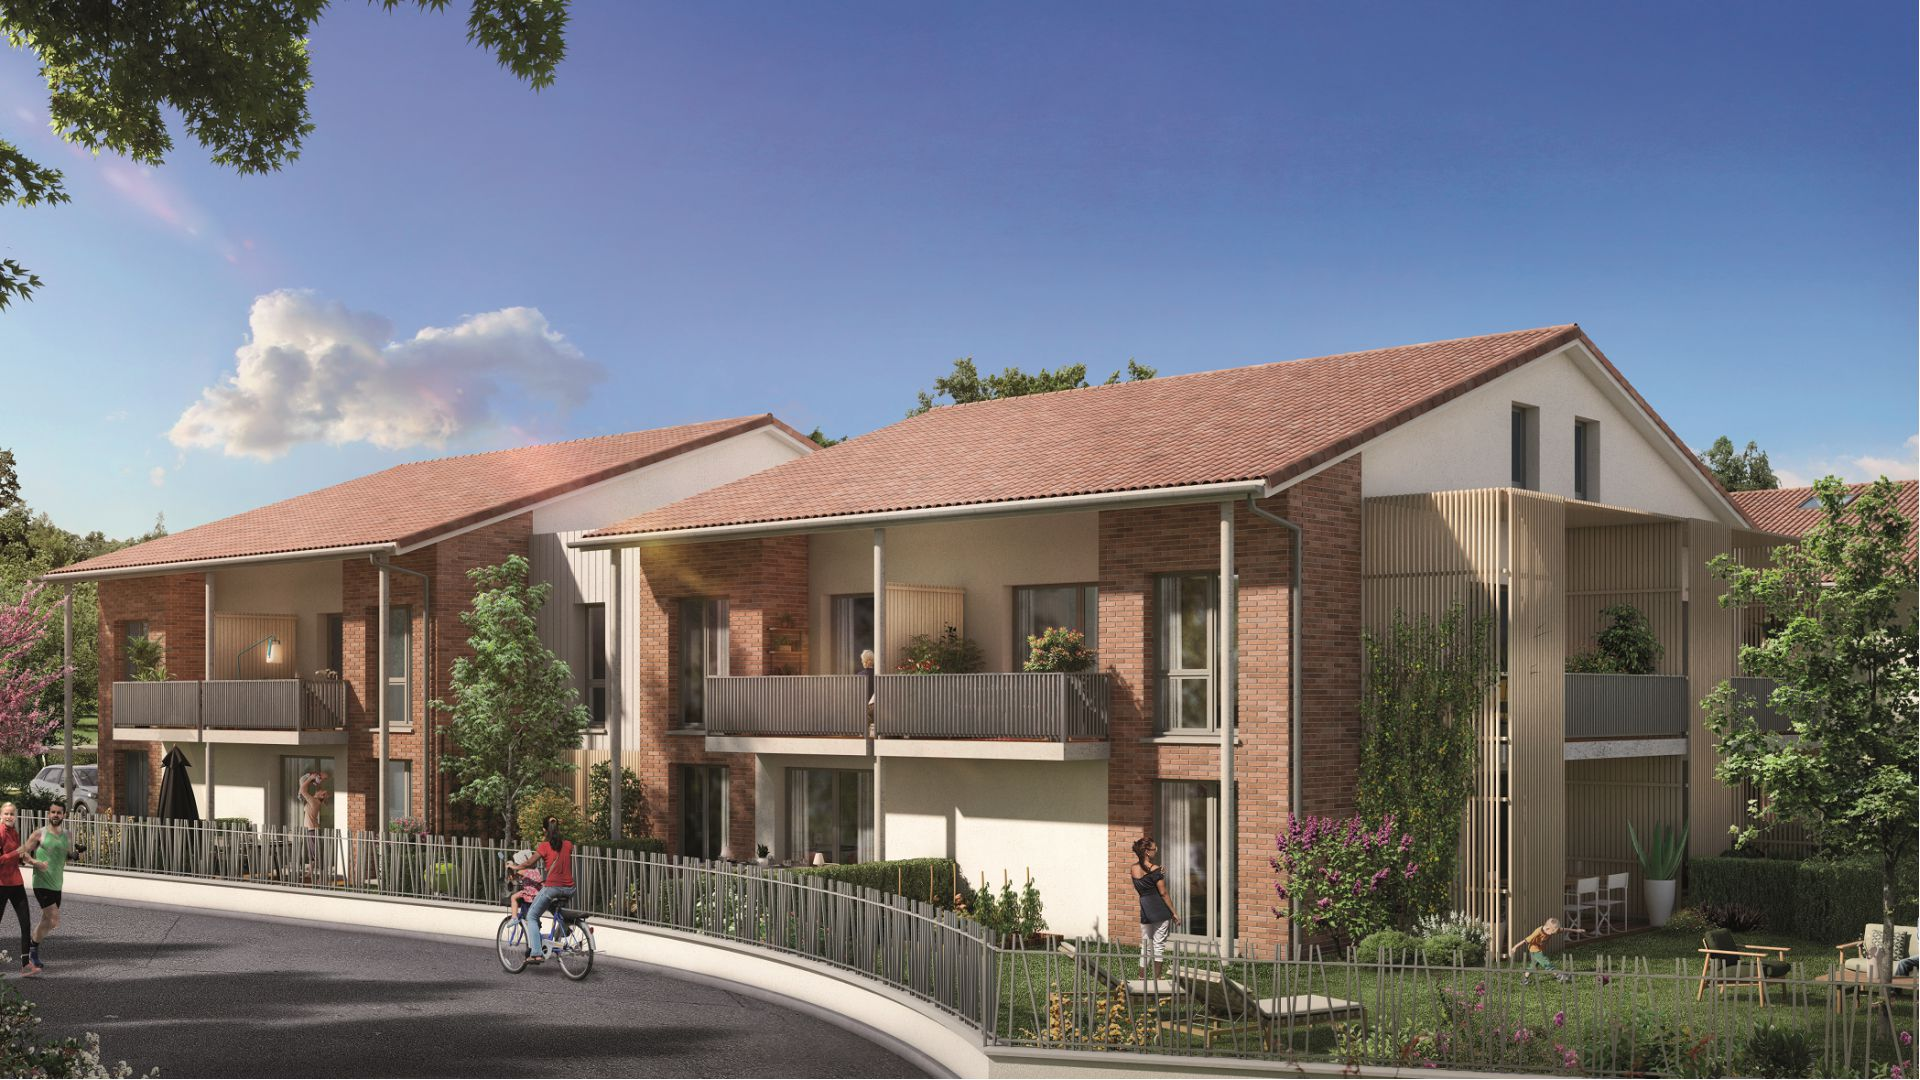 GreenCity immobilier - achat appartement neuf Toulouse Saint-Simon - 31100 - Résidence Val'oriane - T2 - T3 - T4